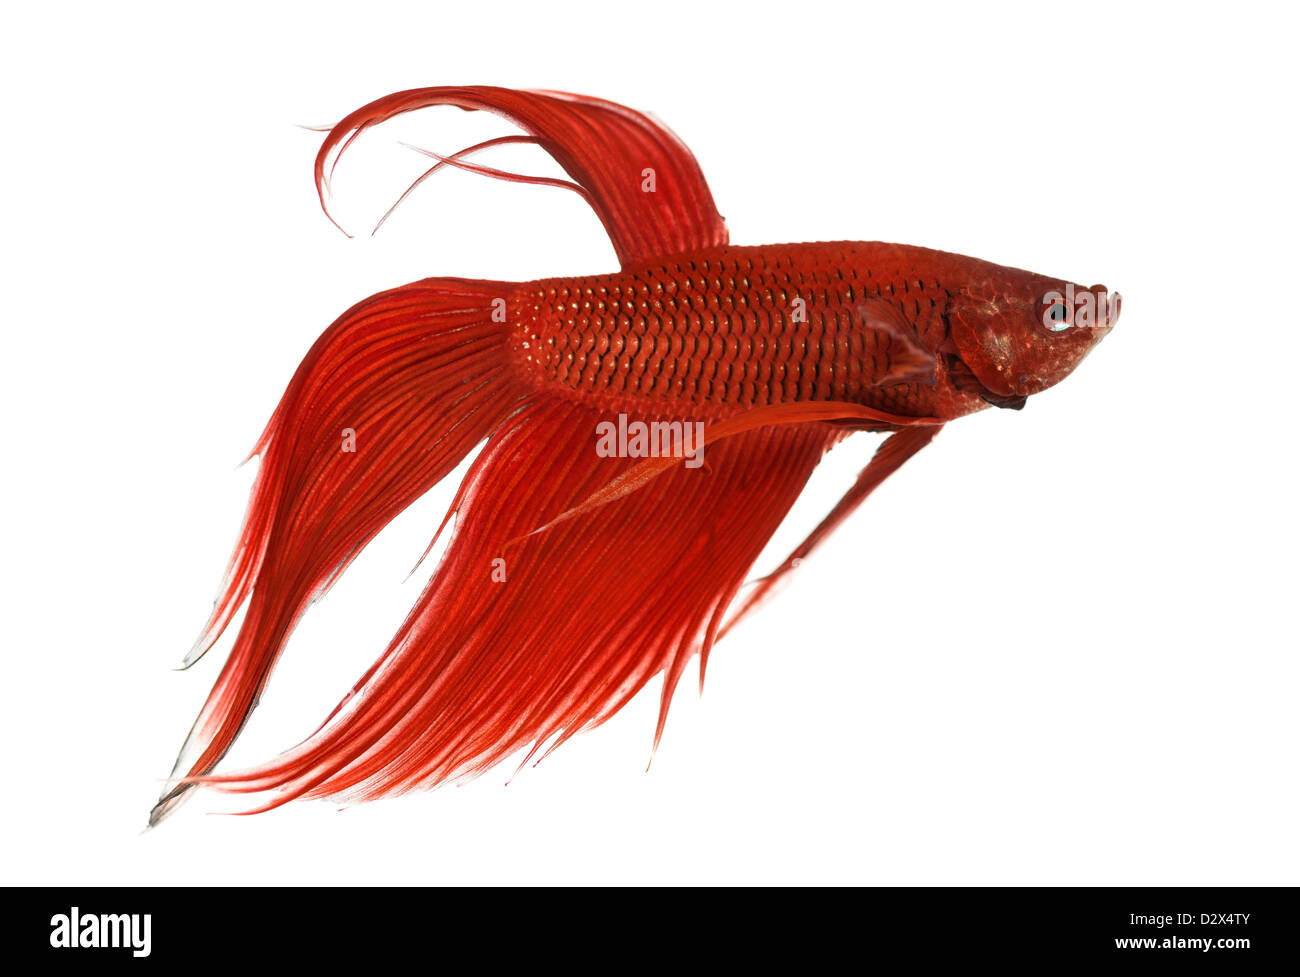 Side view of a Siamese fighting fish, Betta splendens, against white background Stock Photo